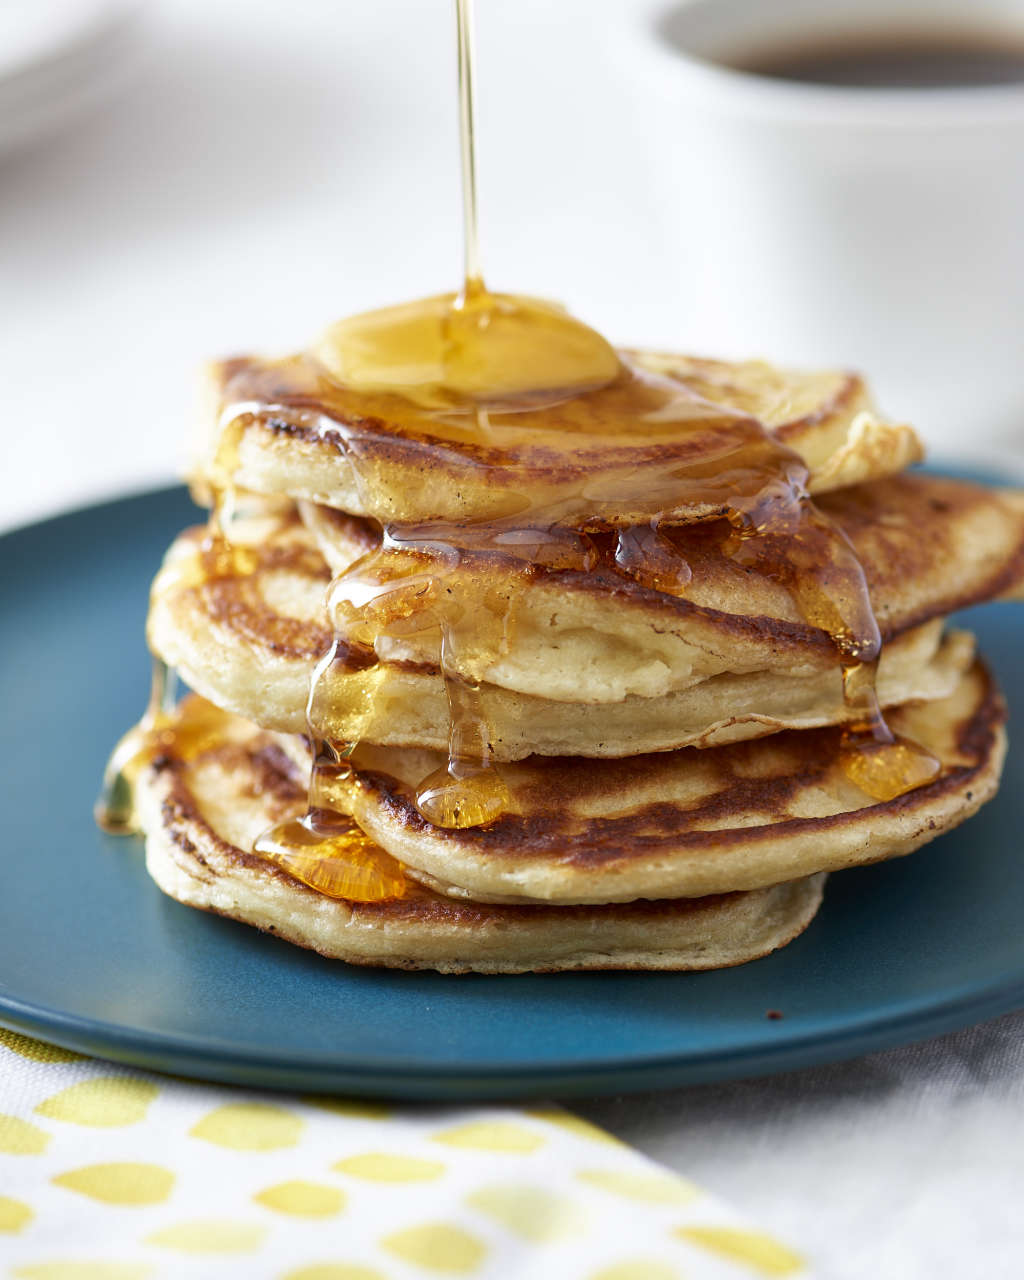 The Only Pancake Recipe We Ever Agree On